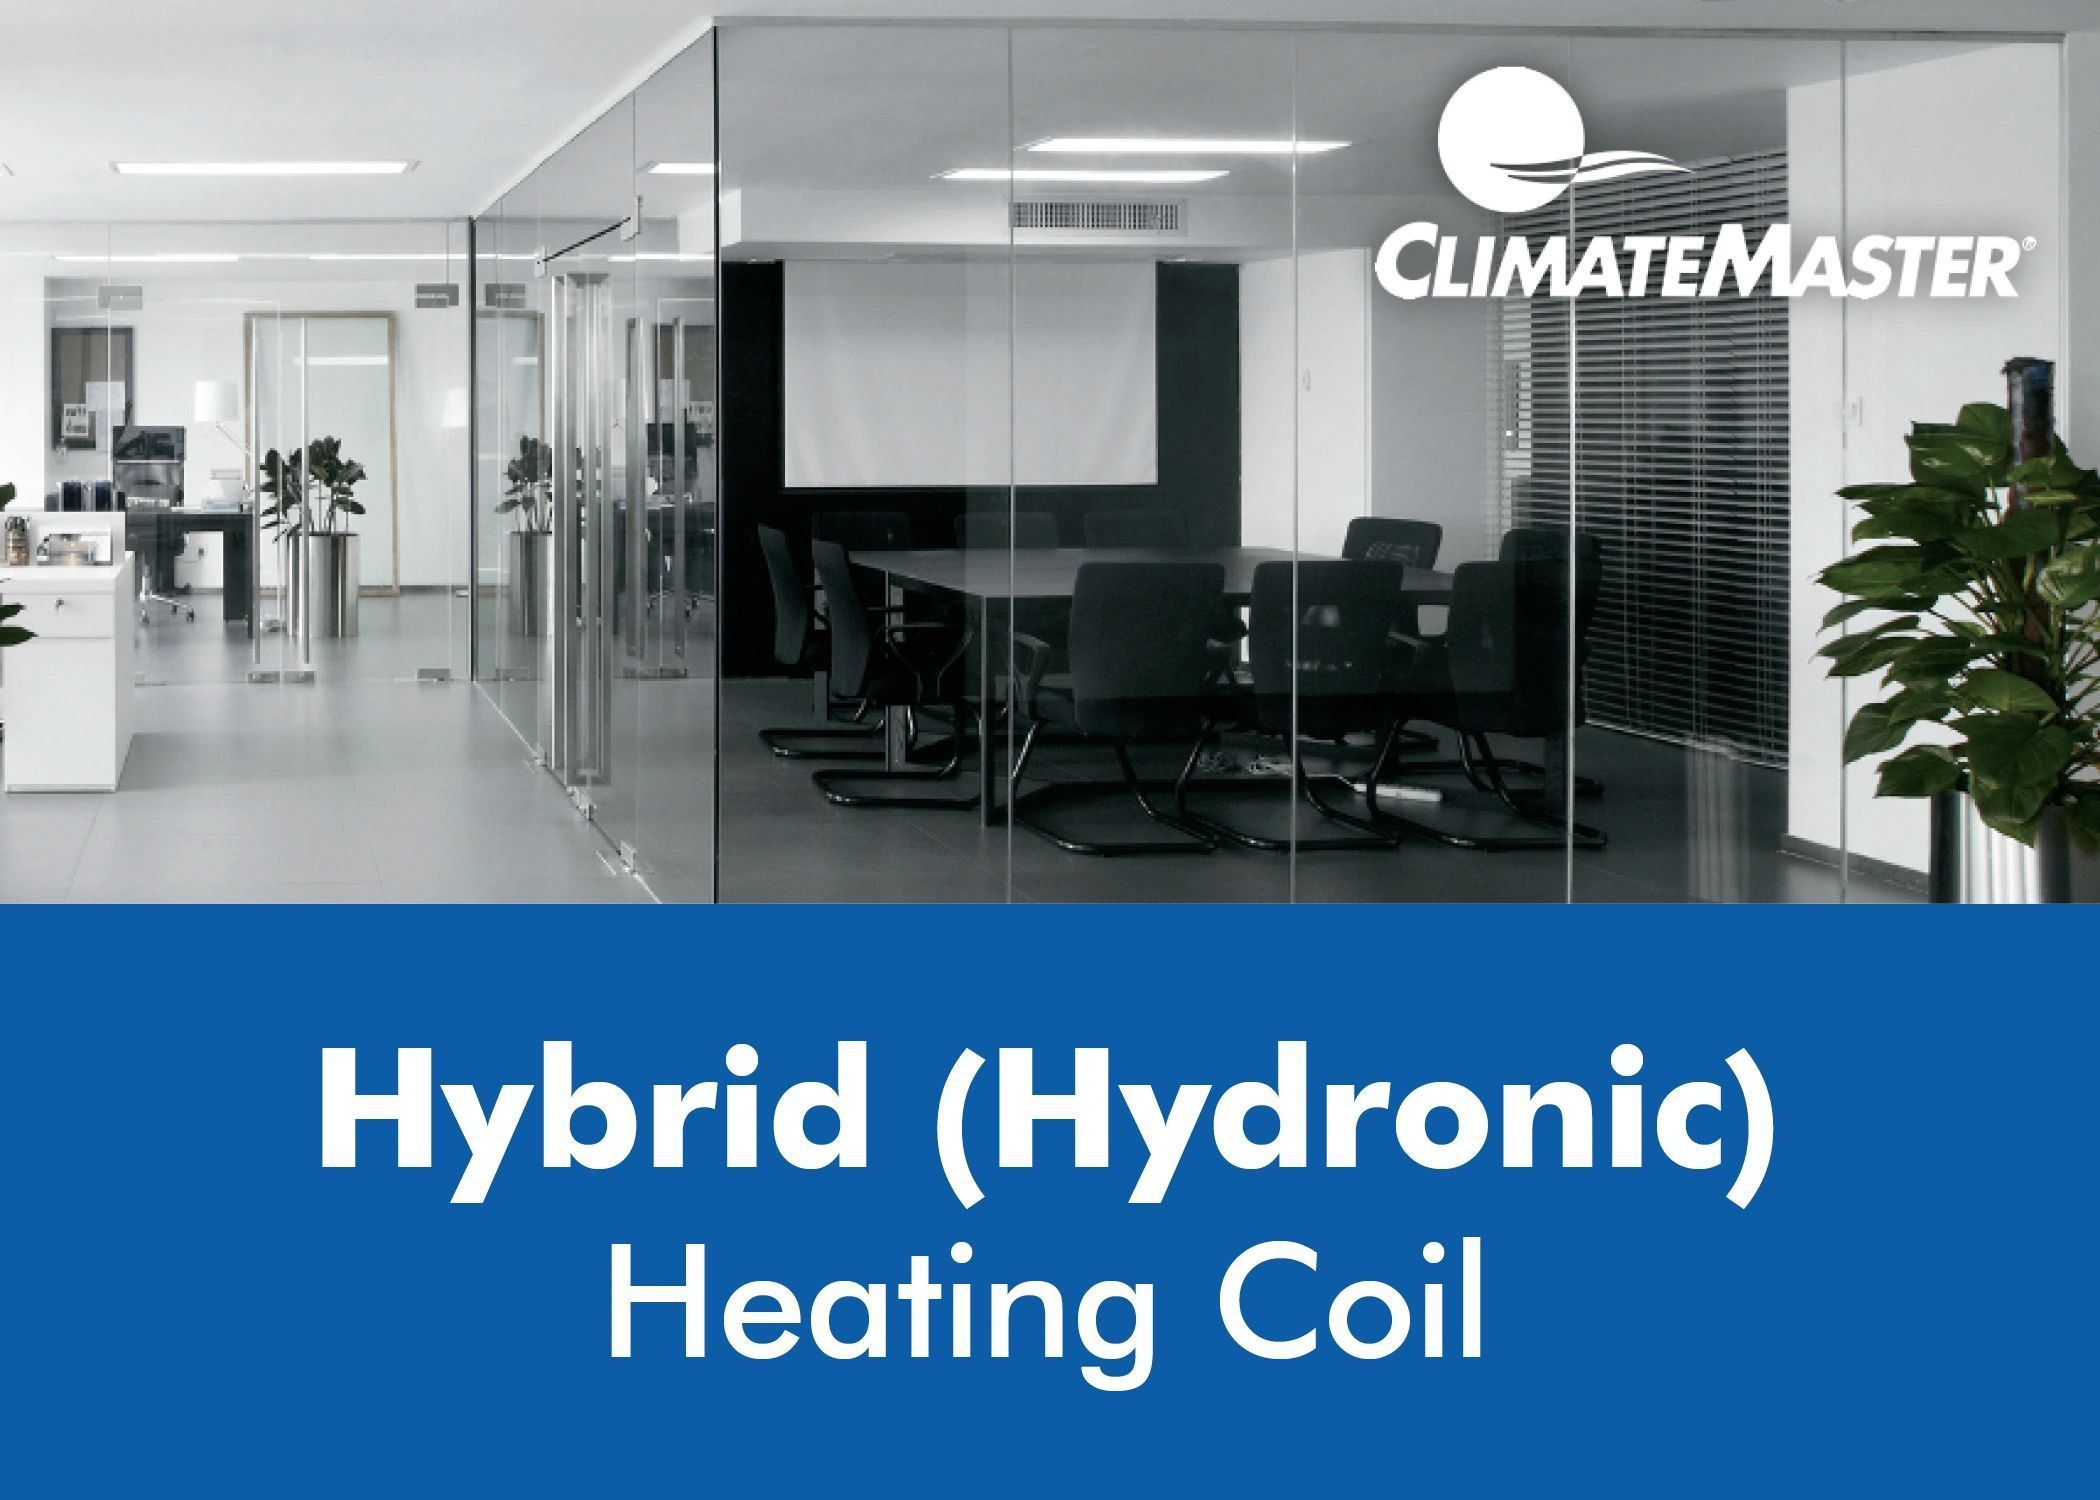 Hybrid Hydronic Heating Coil The Hybrid System Combines The Benefits Of Hydronic Heating And Water Cooled Air Heating Coil Hydronic Heating Commercial Hvac